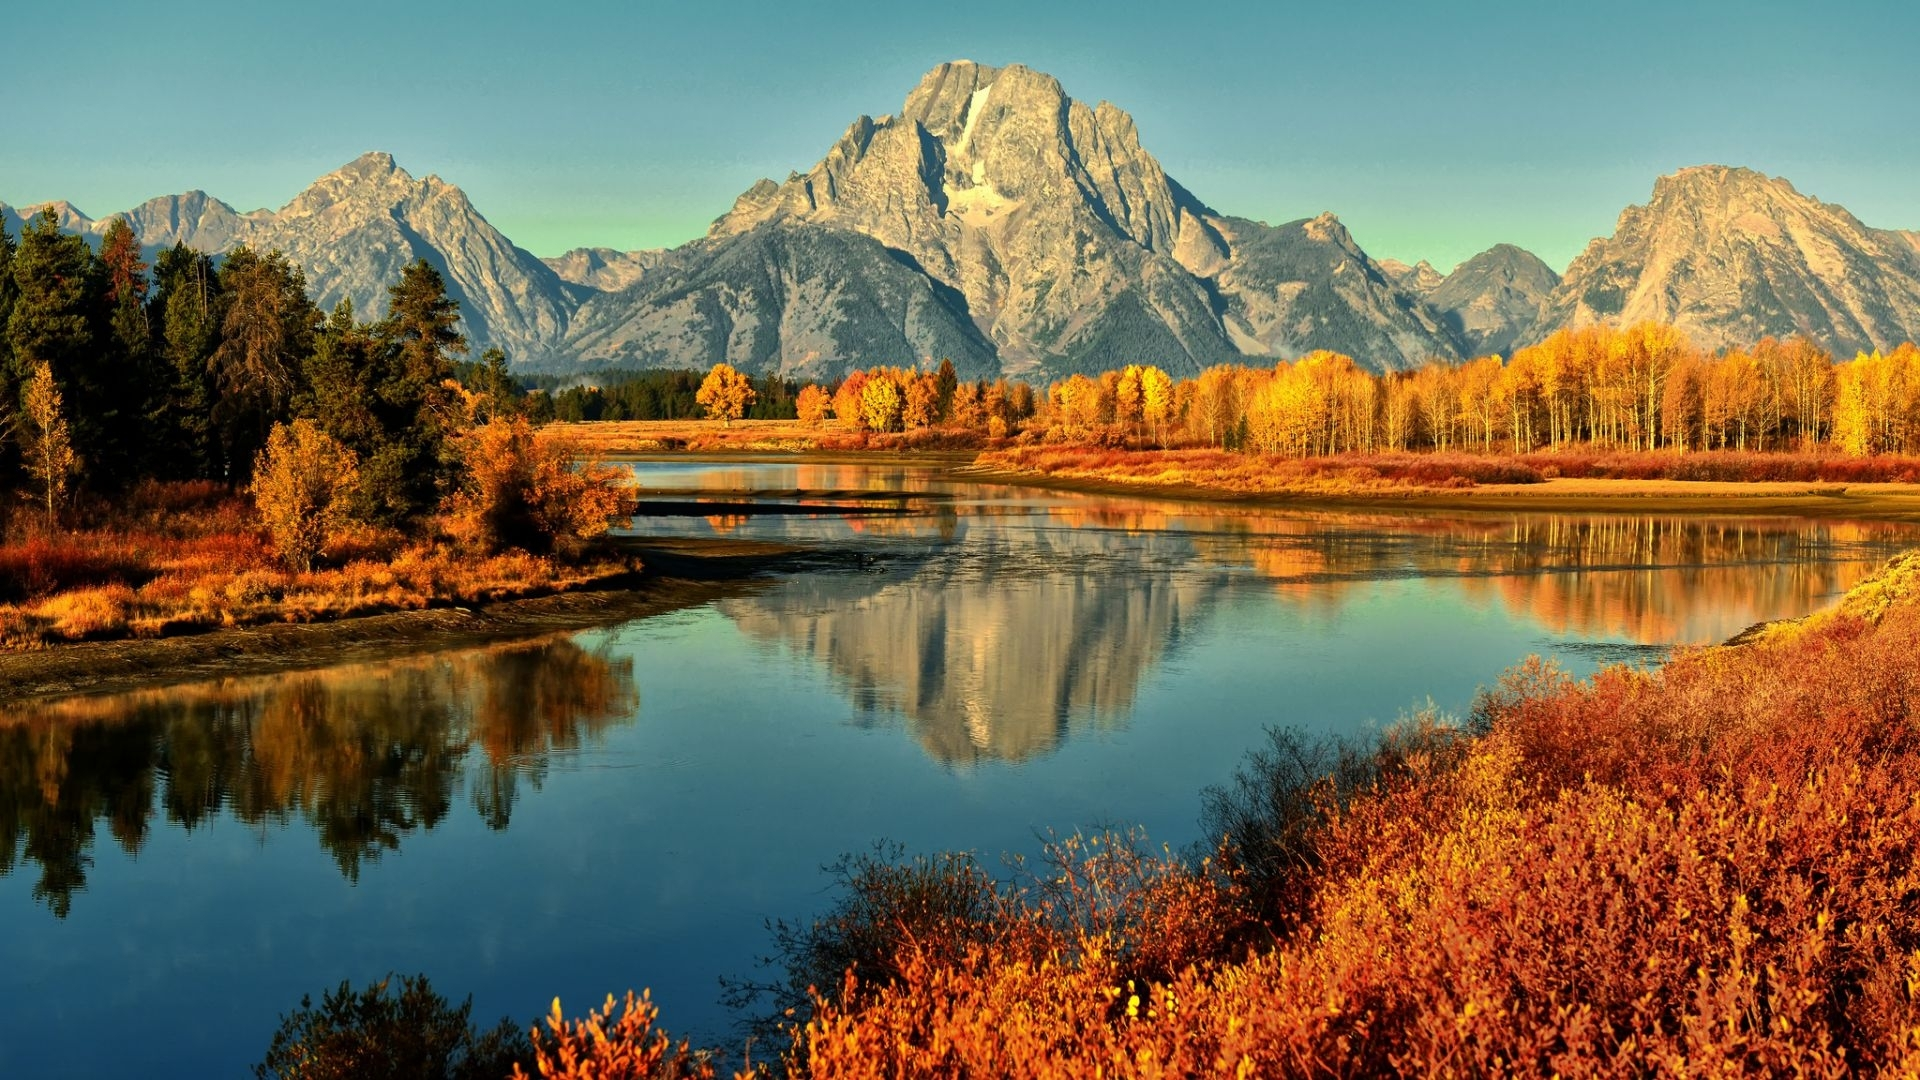 10 Ideal And Newest Beautiful Nature Scenery Wallpapers For Desktop With FULL HD 1080p 1920 X 1080 FREE DOWNLOAD